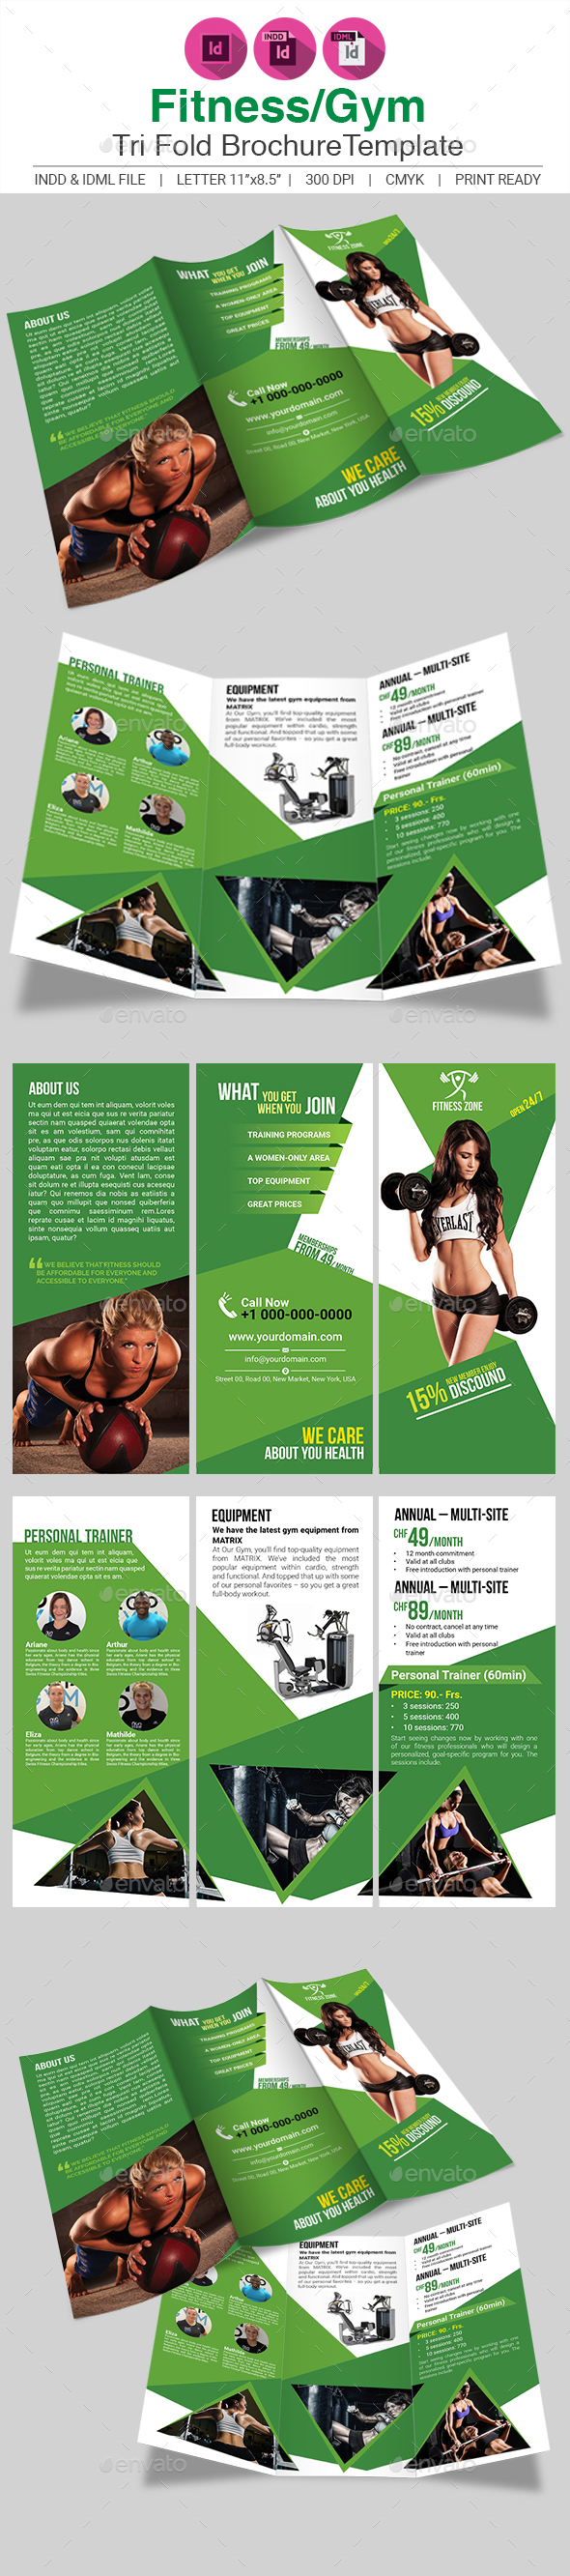 GraphicRiver Fitness Gym Tri-fold Brochure Template 20850289